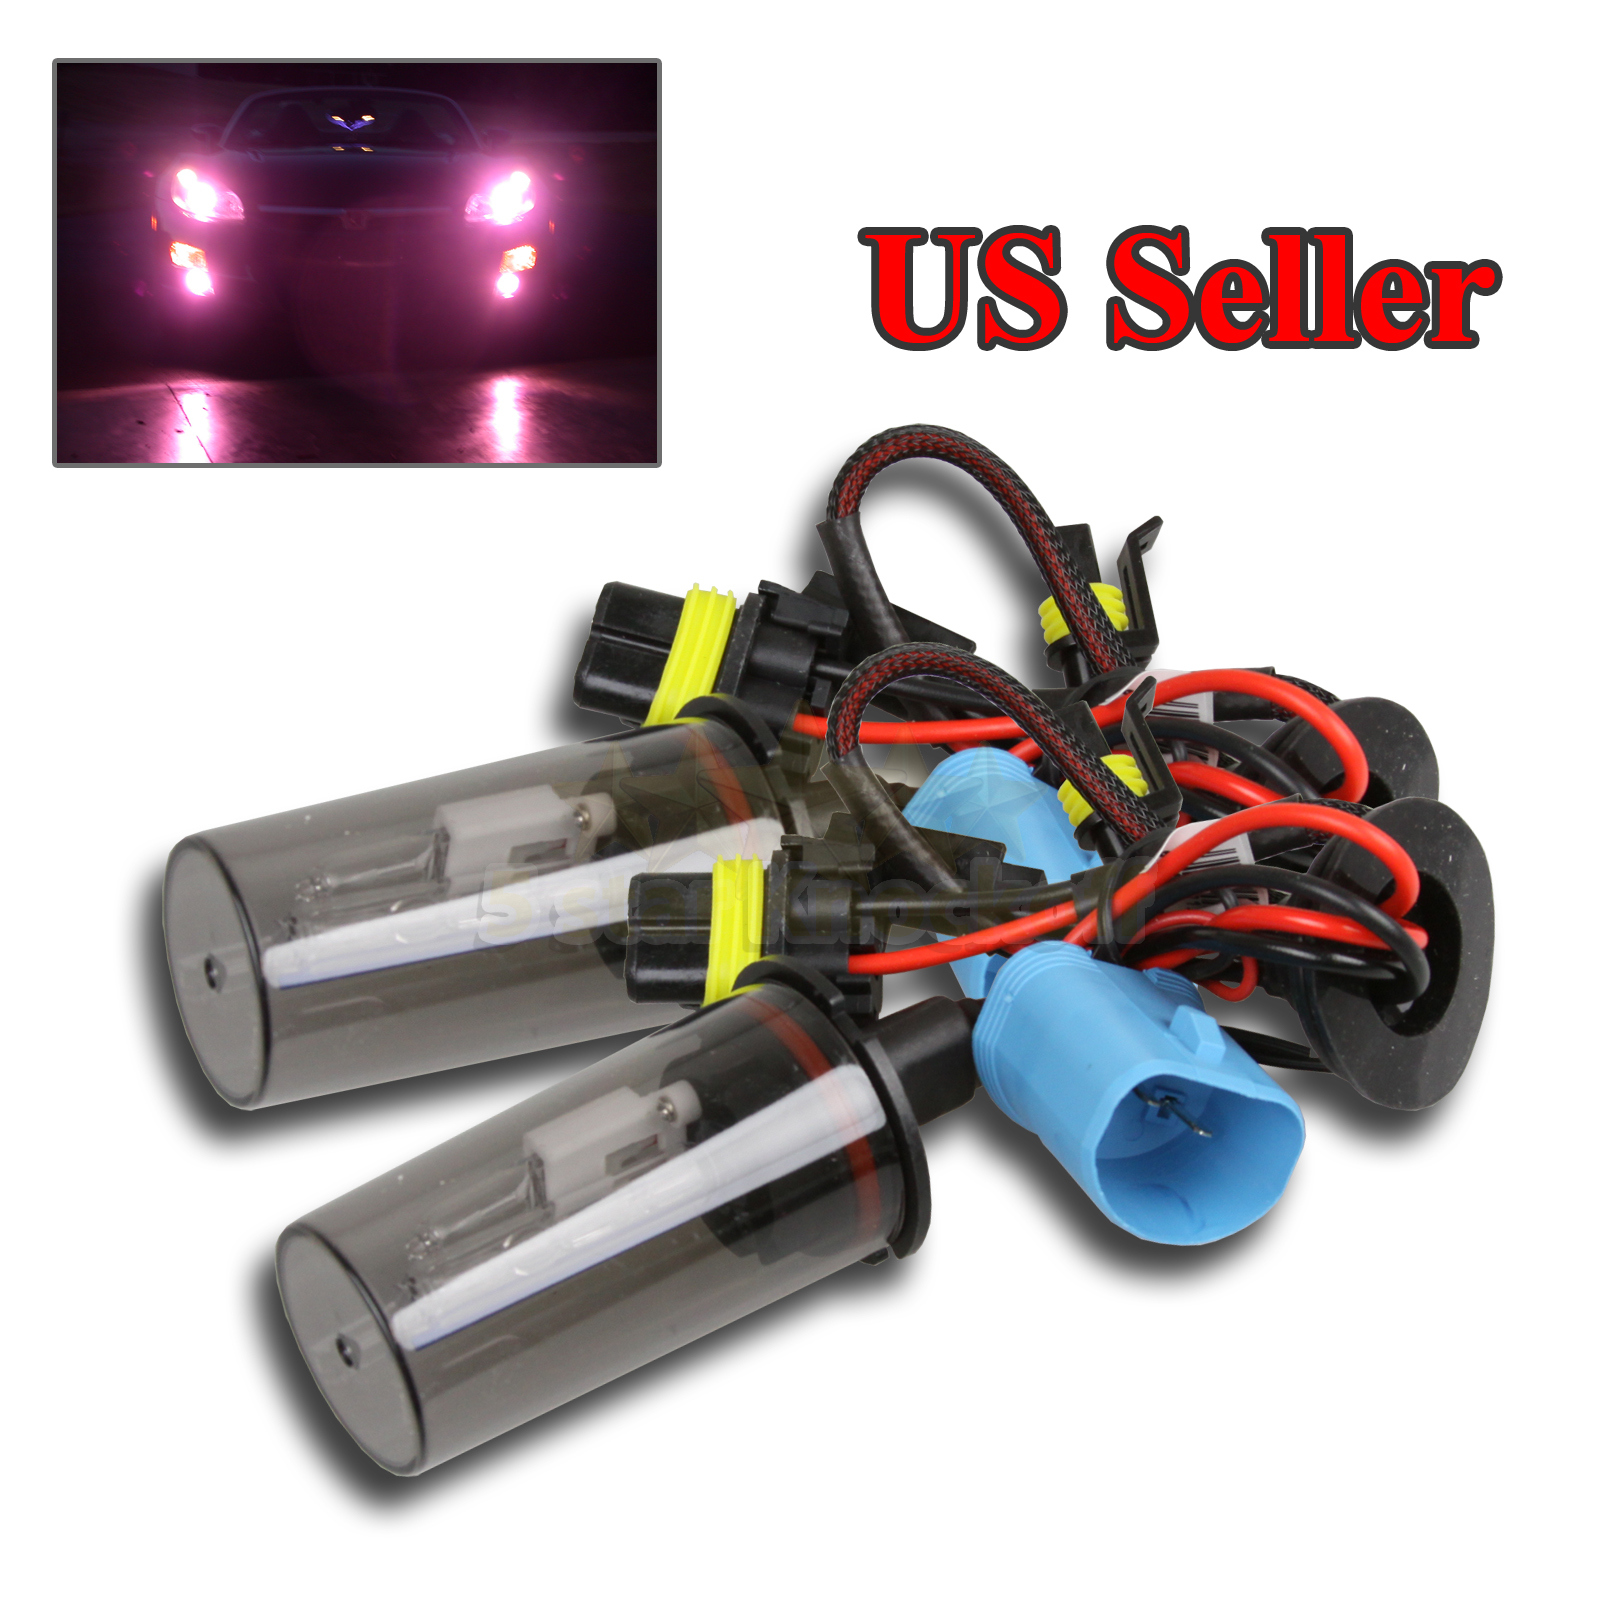 Details About 2 X 9007 12000K 55W PURPLE HID CONVERSION BULBS ONLY FOR HEADLIGHT UPGRADE DIY